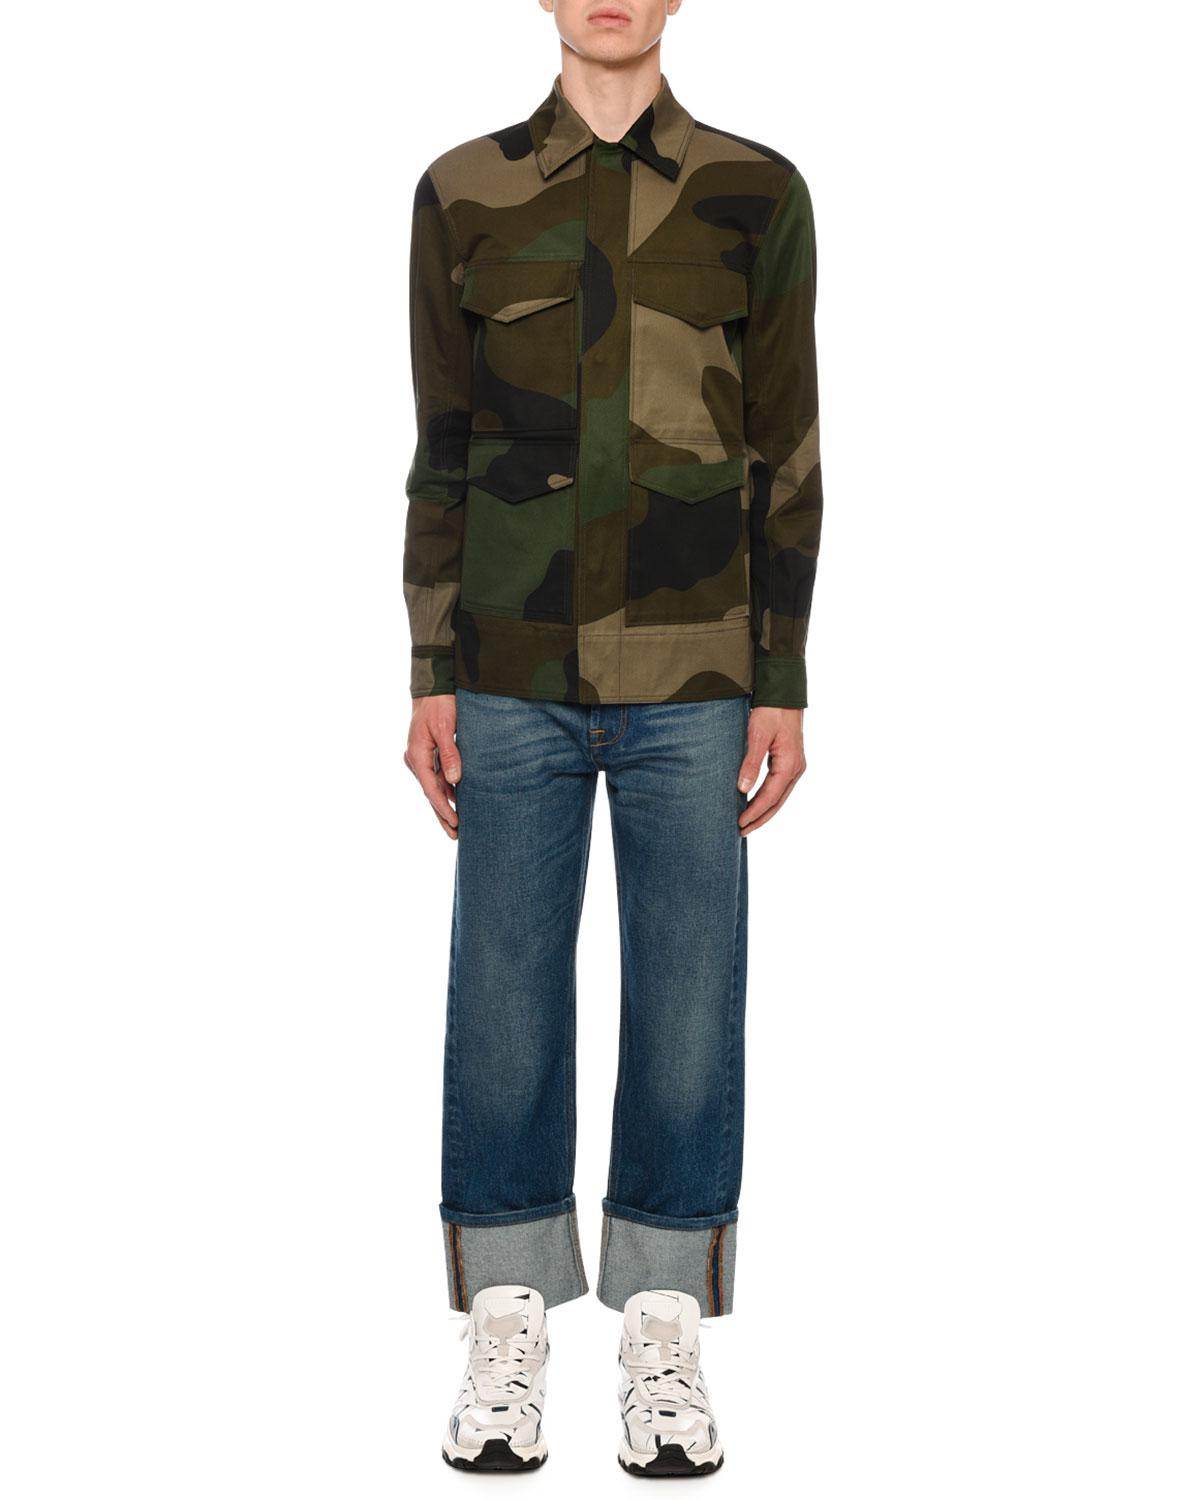 296be6979b985 Lyst - Valentino Men's Camo Army Field Jacket in Green for Men